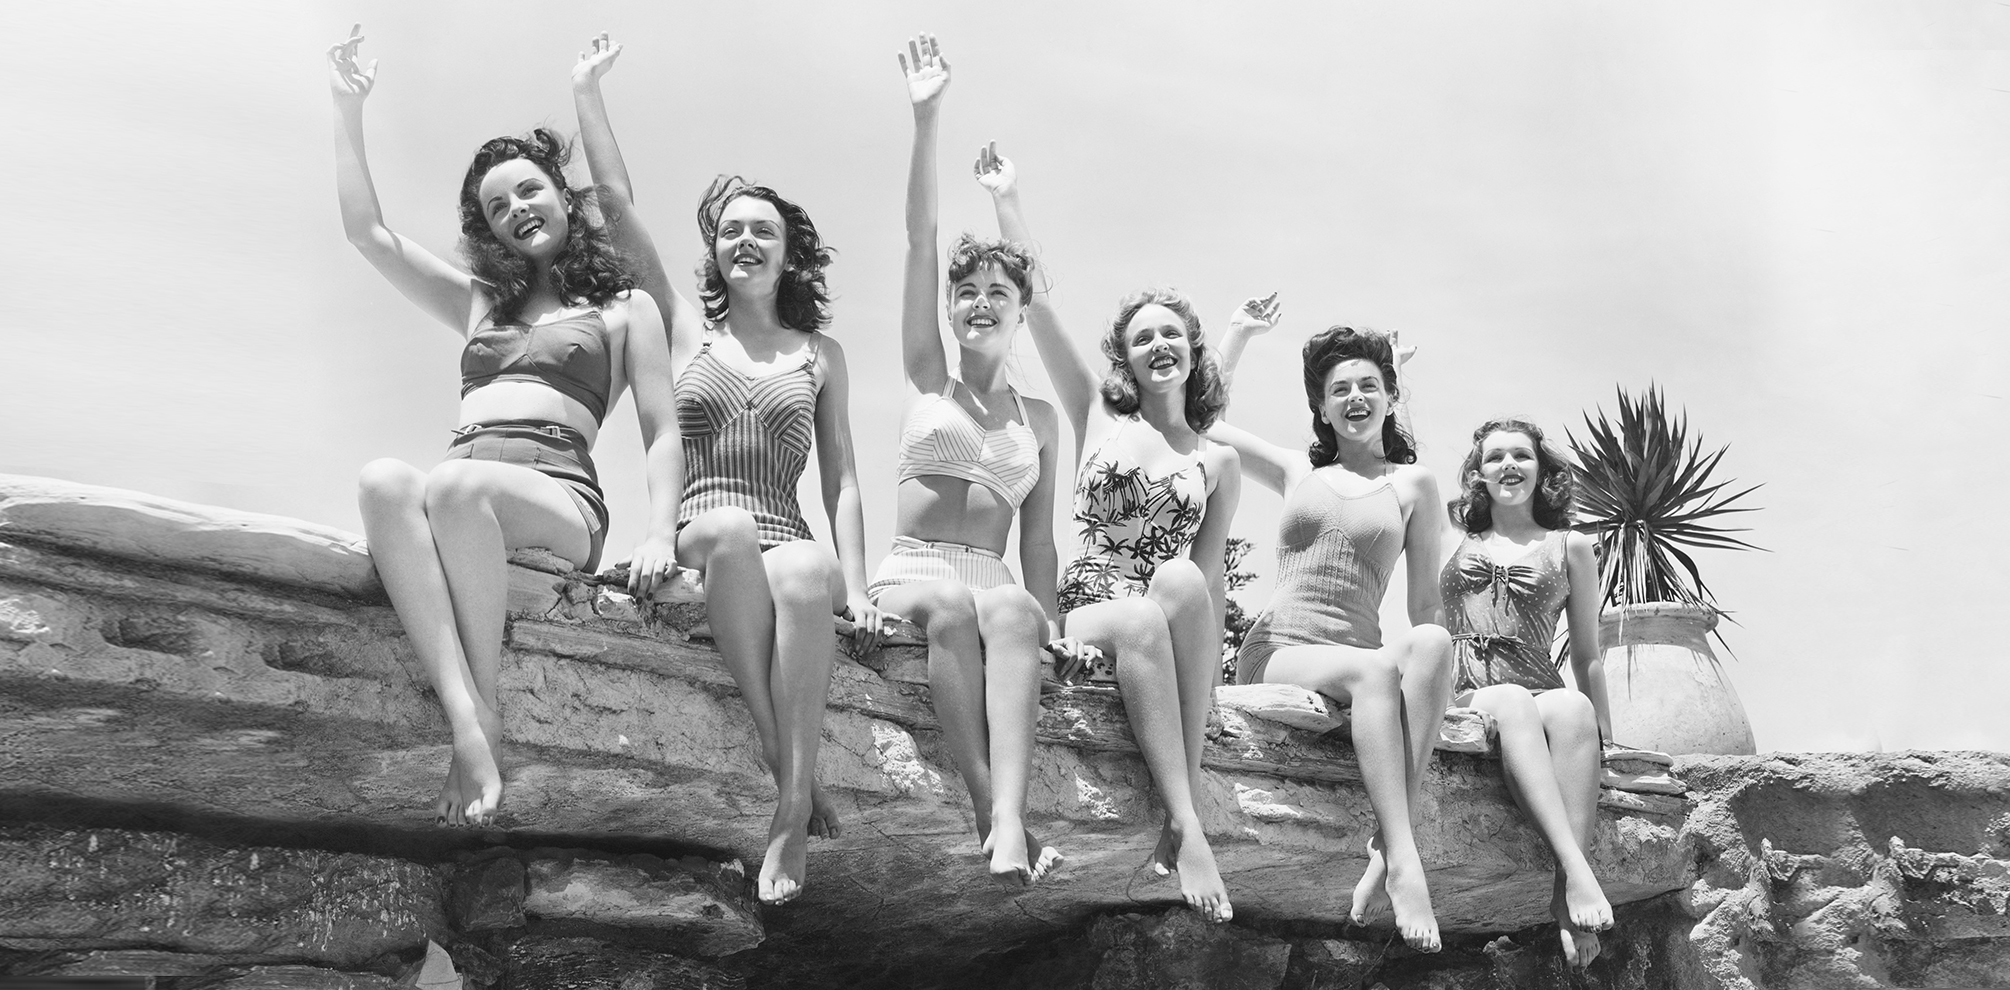 vintage photograph of models